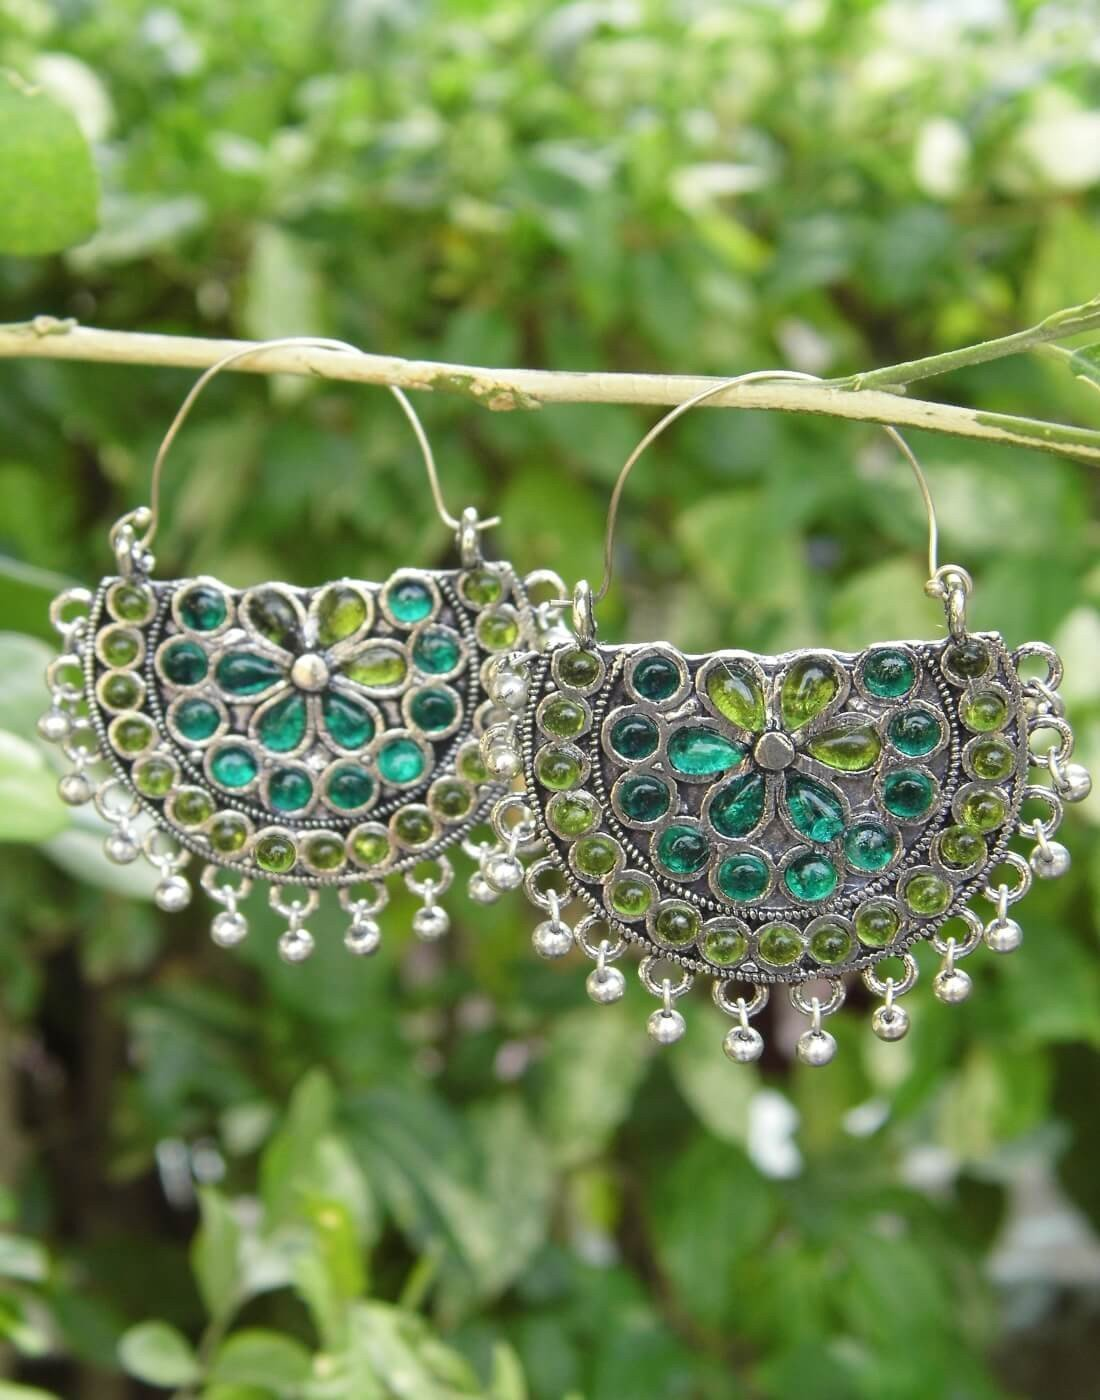 Afghani Earrings/Chandbalis In Alloy Metal 25